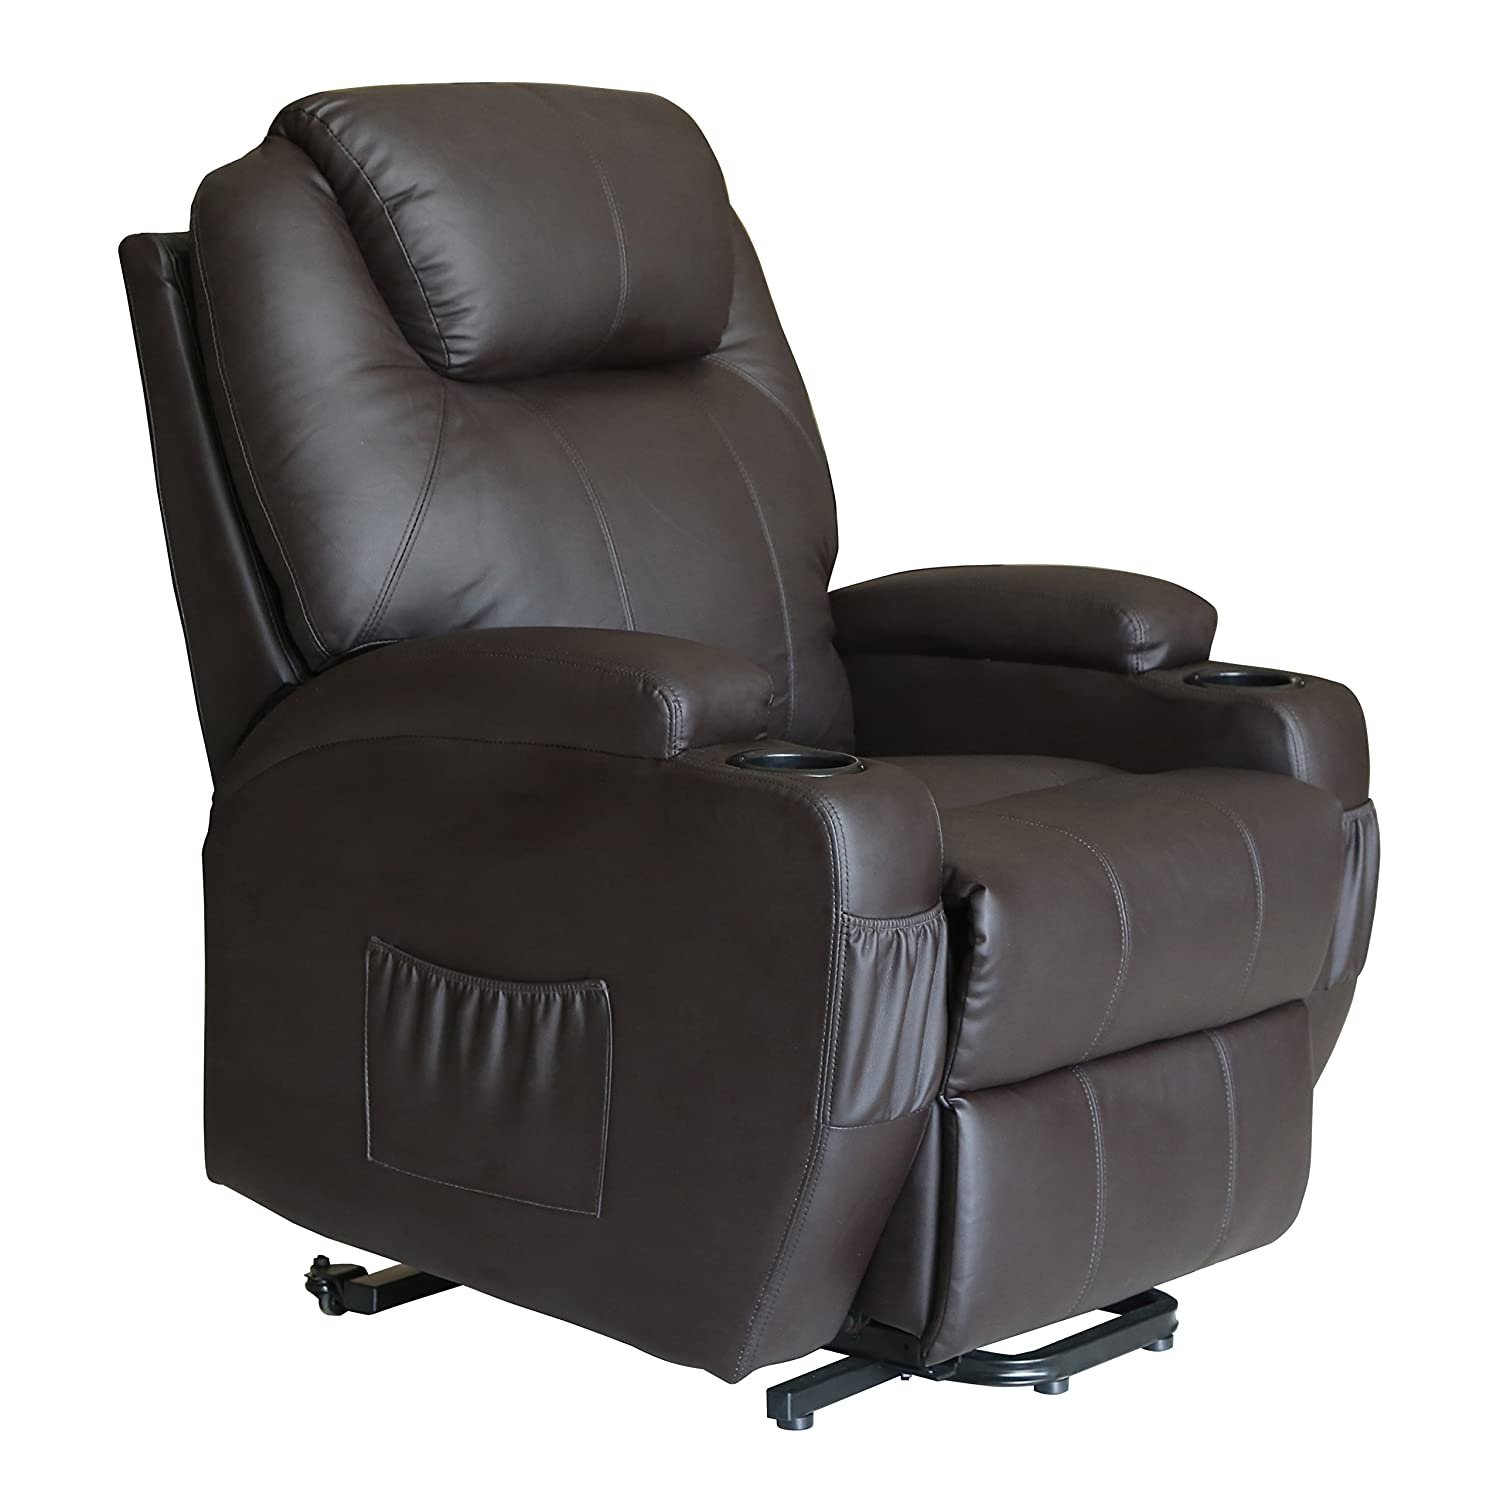 Amazon com  MAGIC UNION Deluxe Wall Hugger Power Lift Heated Vibrating  Massage Recliner Chair with Wheels   Brown  Kitchen   Dining. Amazon com  MAGIC UNION Deluxe Wall Hugger Power Lift Heated